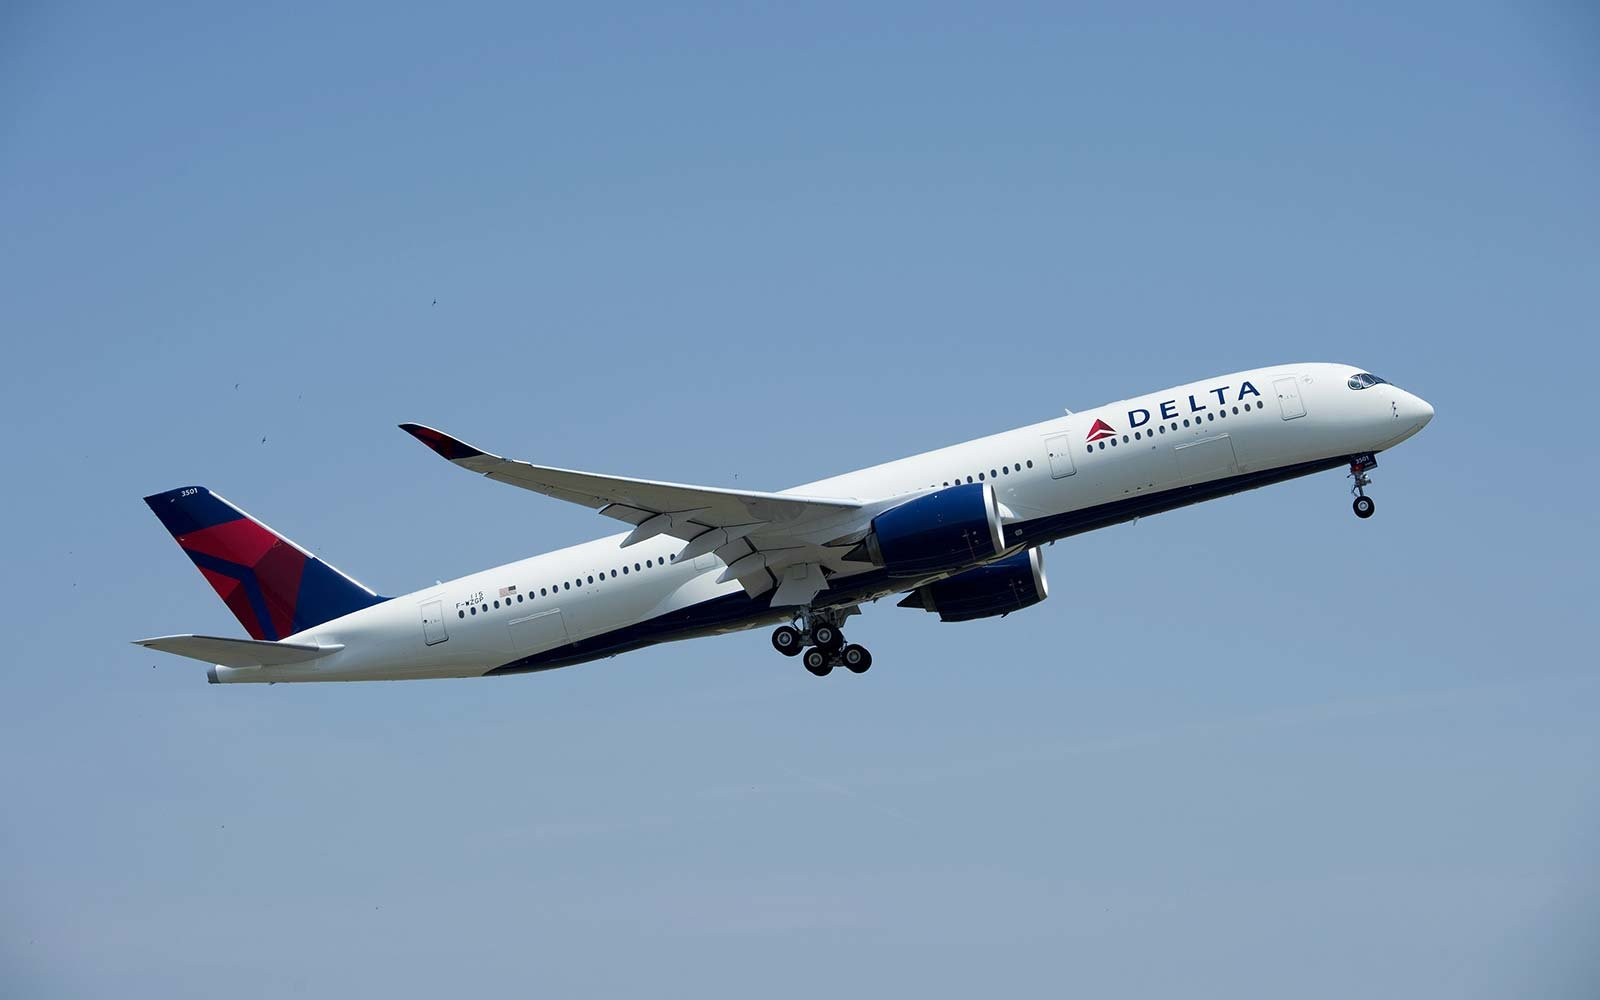 delta s brand new plane is the first to feature the airline s